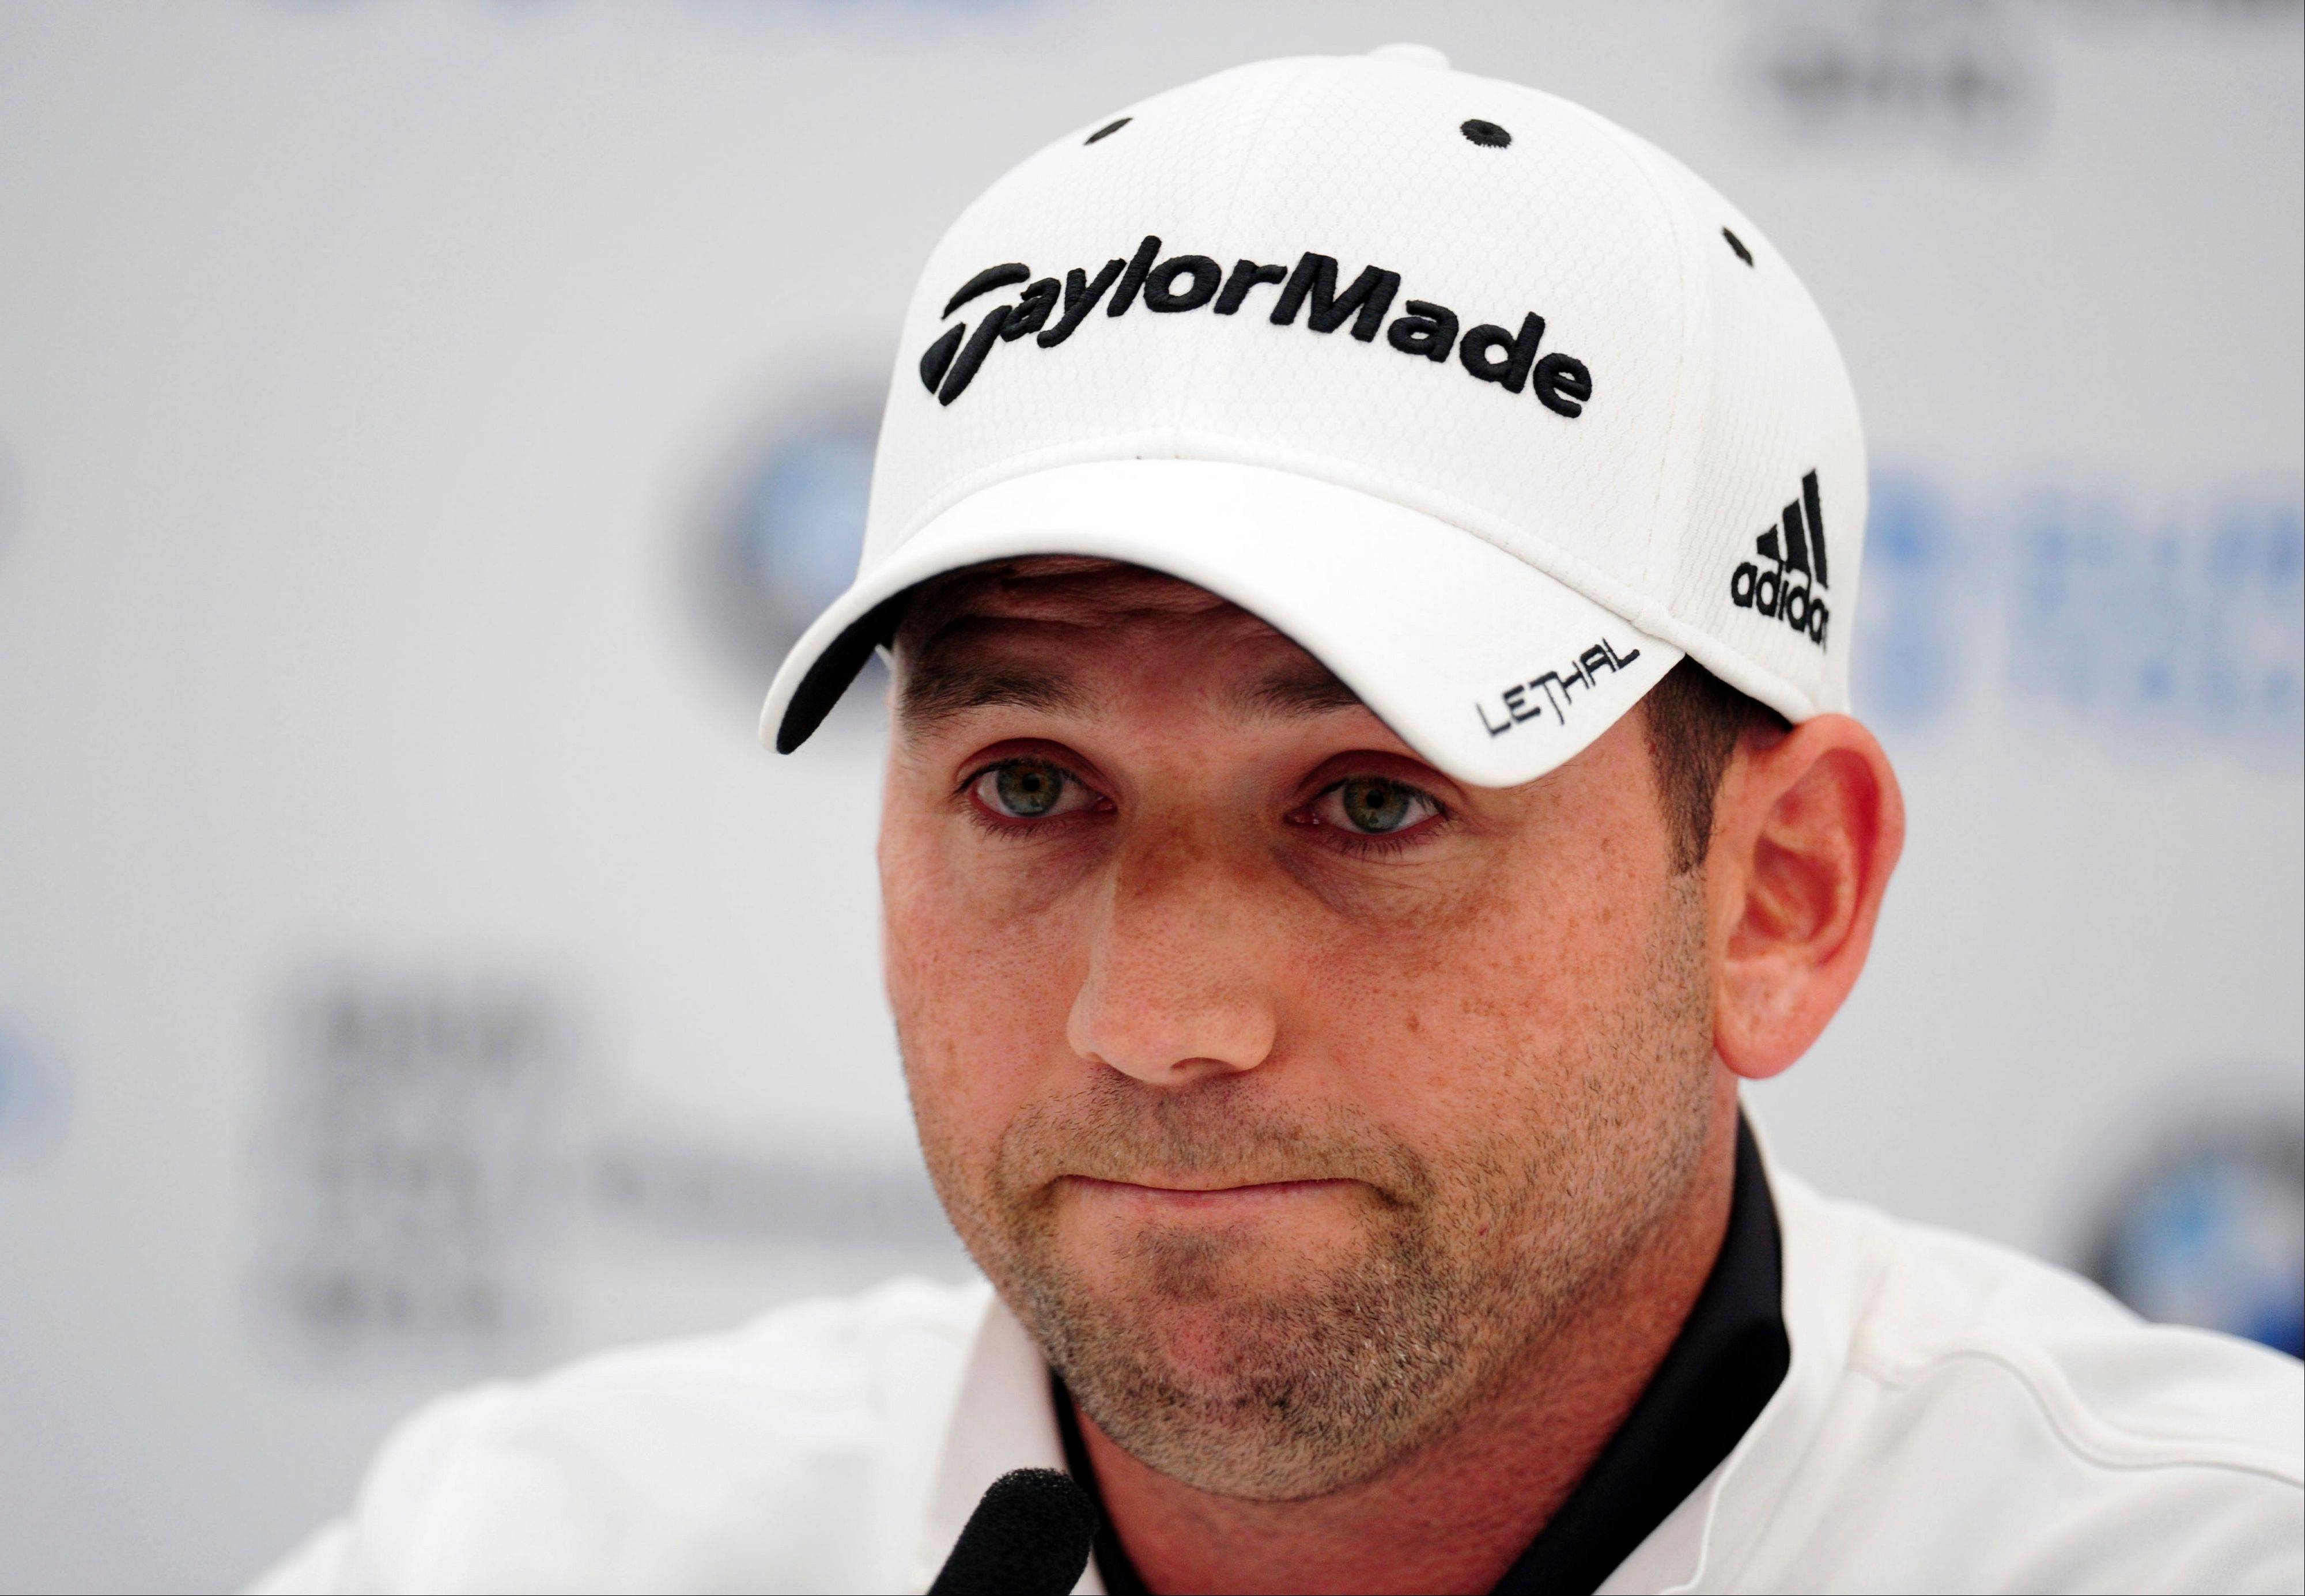 "Sergio Garcia has apologized for his ""fried chicken"" comment, and Tiger Woods called the remark hurtful and inappropriate, but also said it's time to move on."